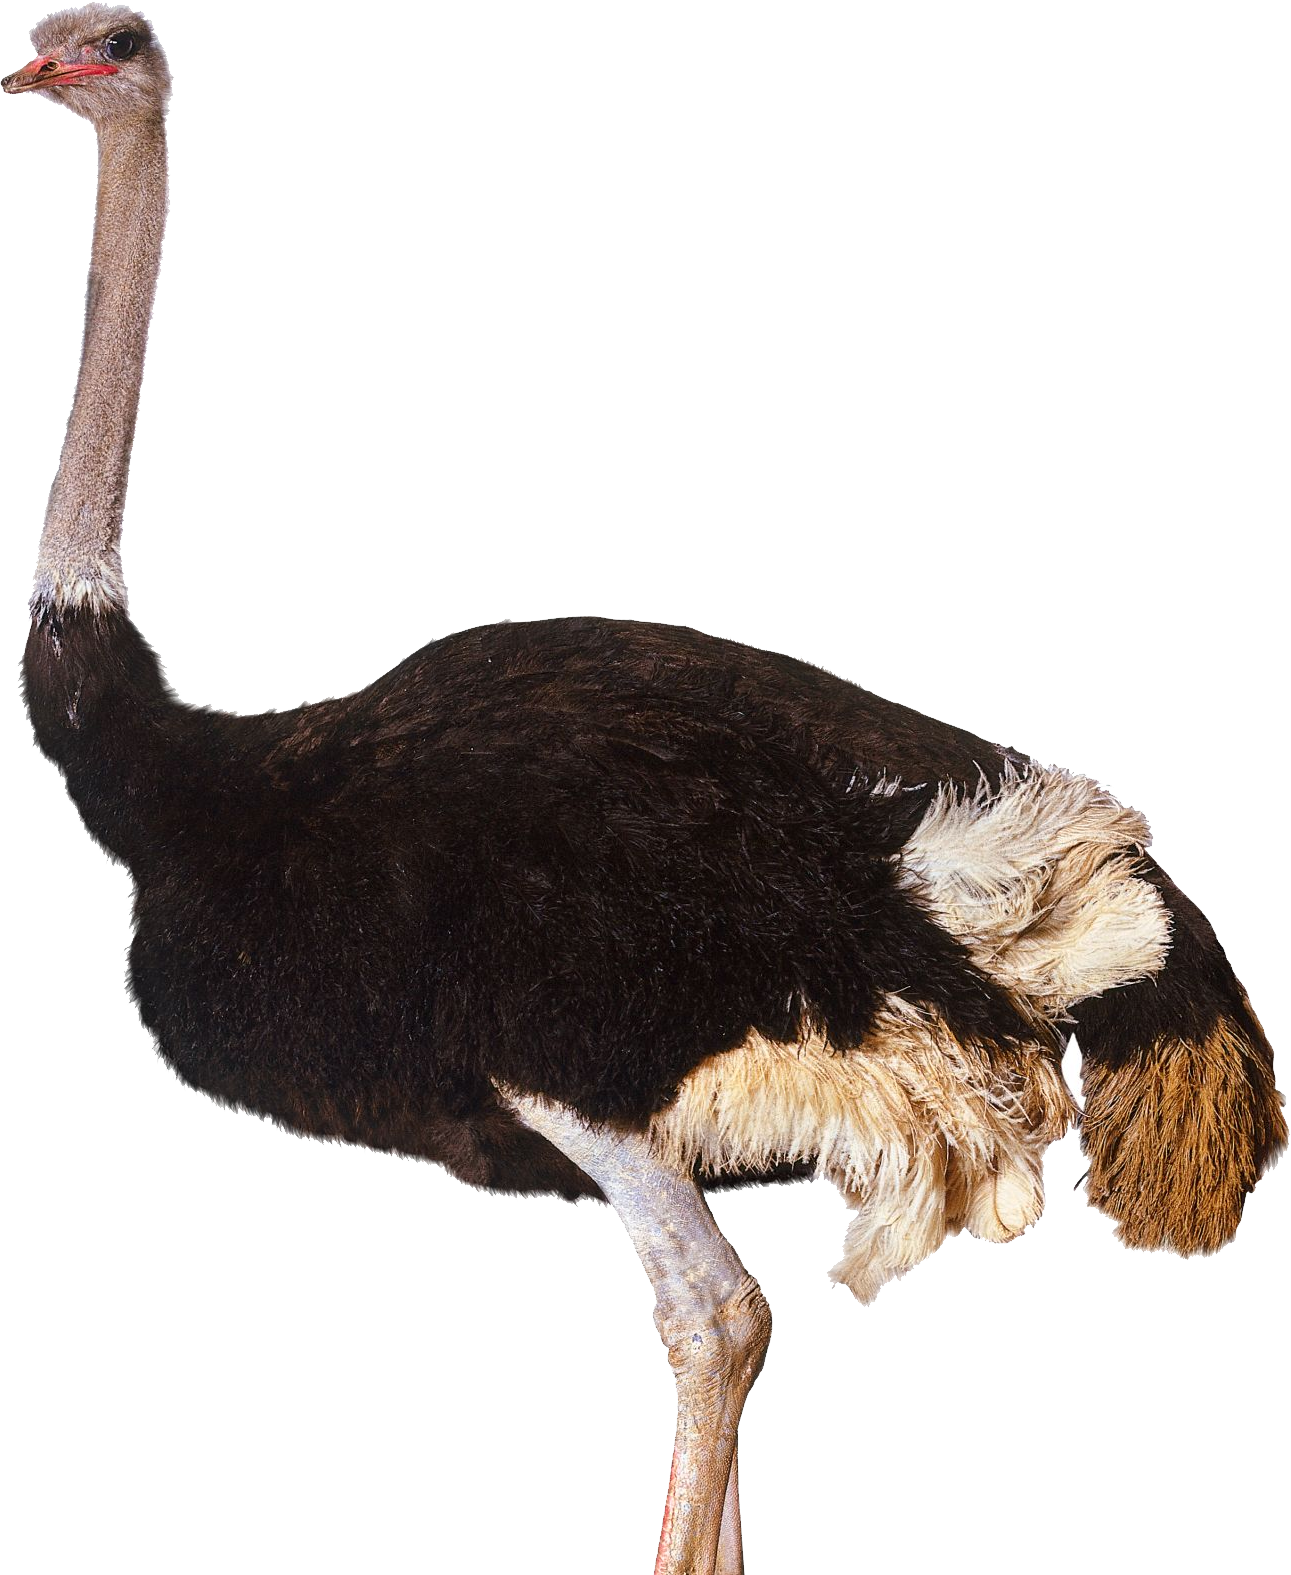 Ostrich legs png. Images free download